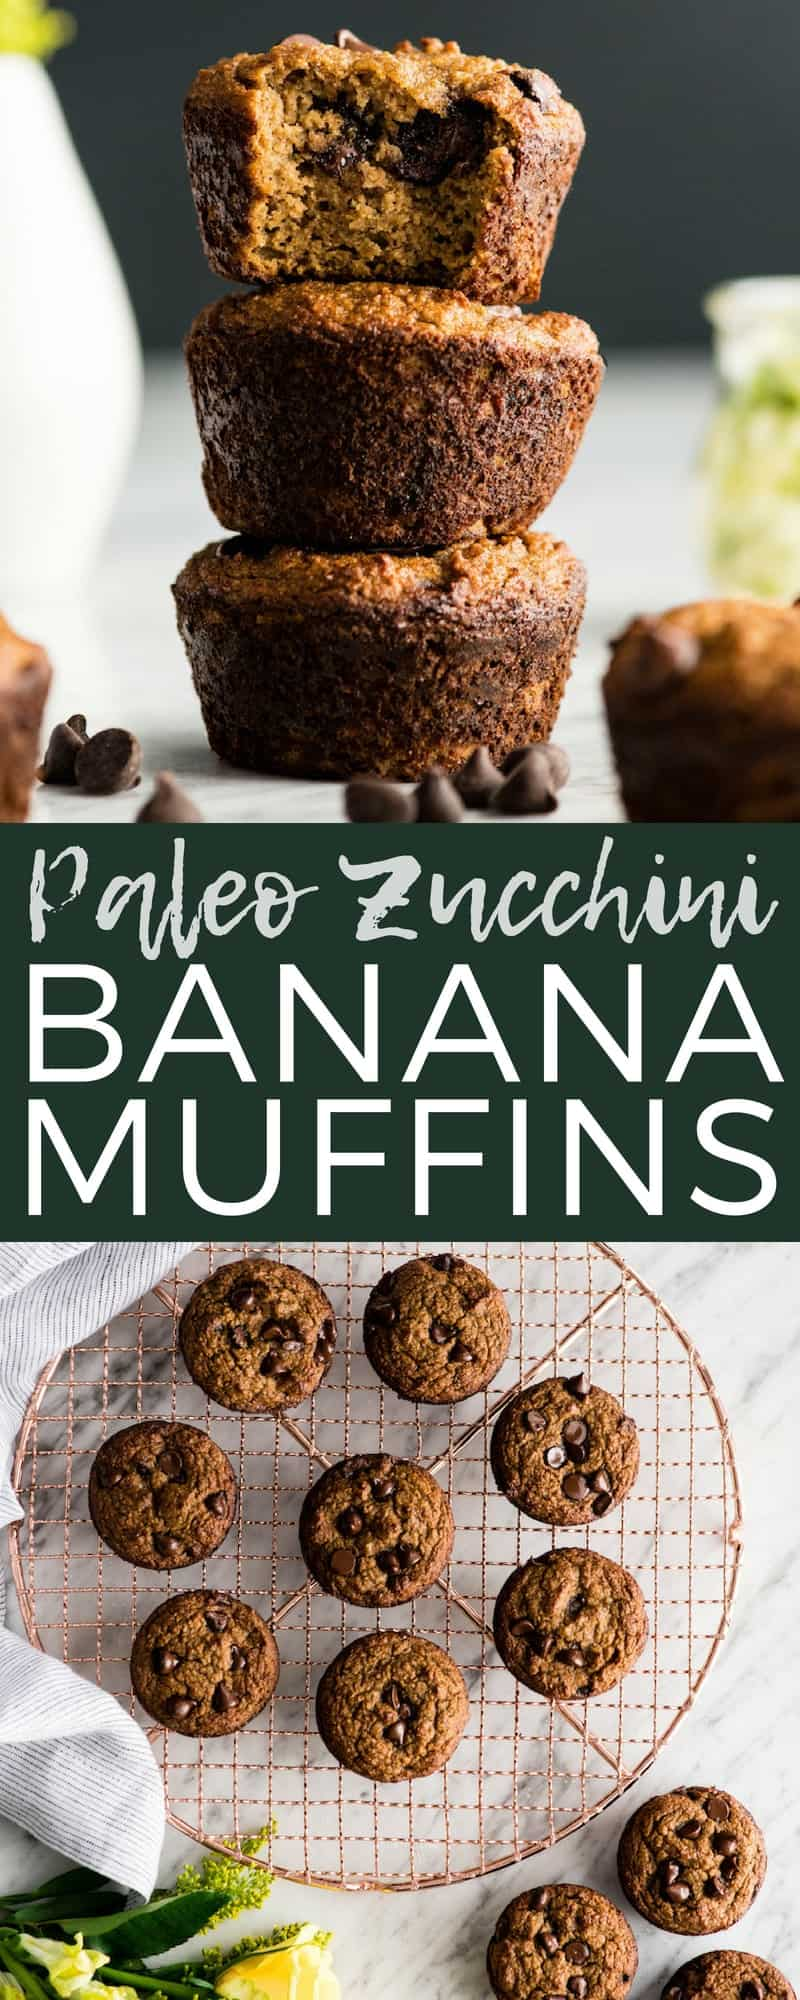 Paleo Zucchini Banana Muffins! The perfect healthy breakfast recipe that delivers a serving of fruits AND veggies! Paleo, gluten-free & dairy-free! #paleo #zucchini #banana #muffins #glutenfree #grainfree #dairyfree #vitamix